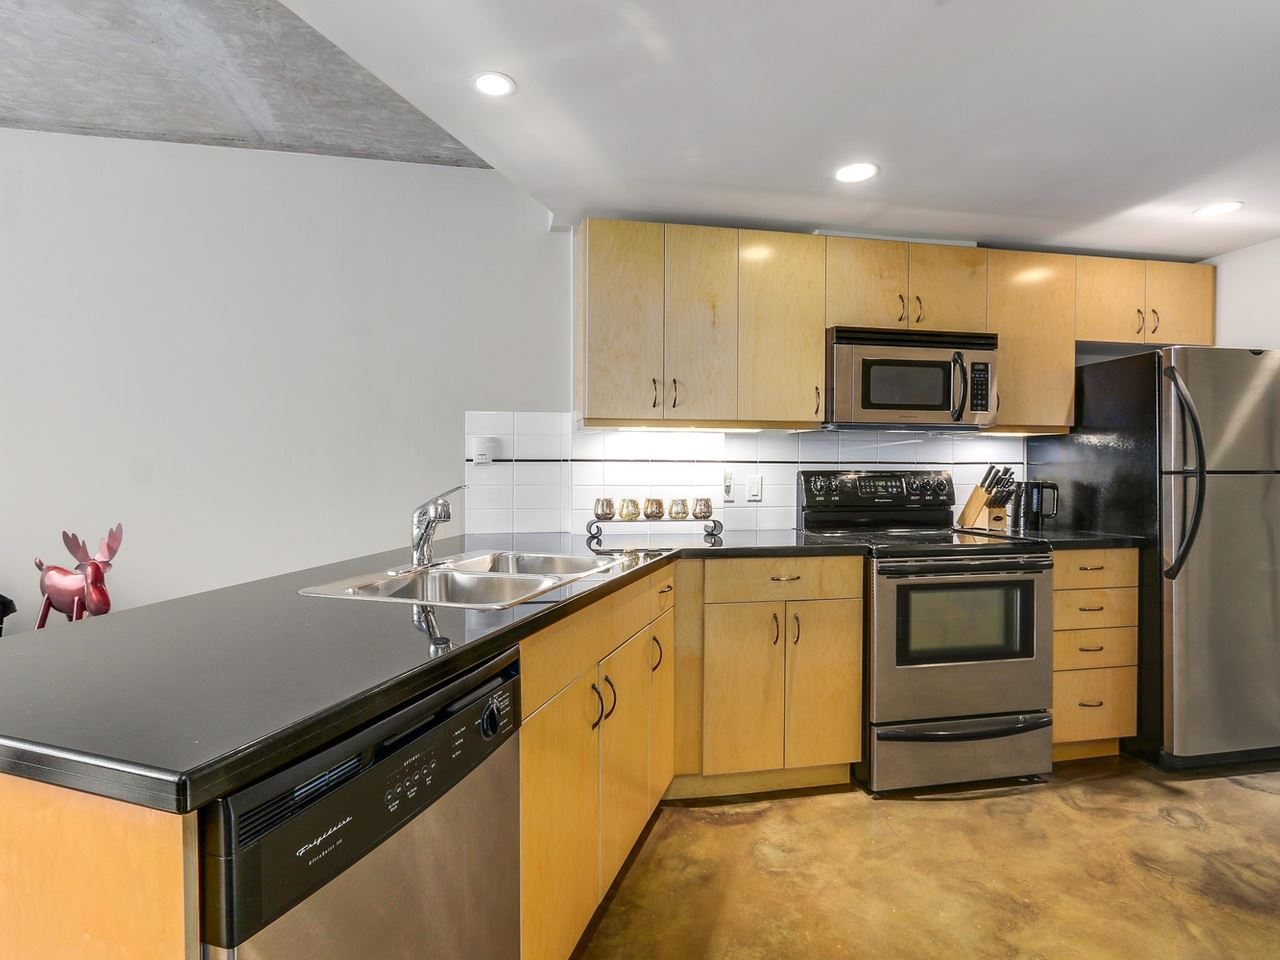 Condo Apartment at 905 STATION STREET, Vancouver East, British Columbia. Image 5